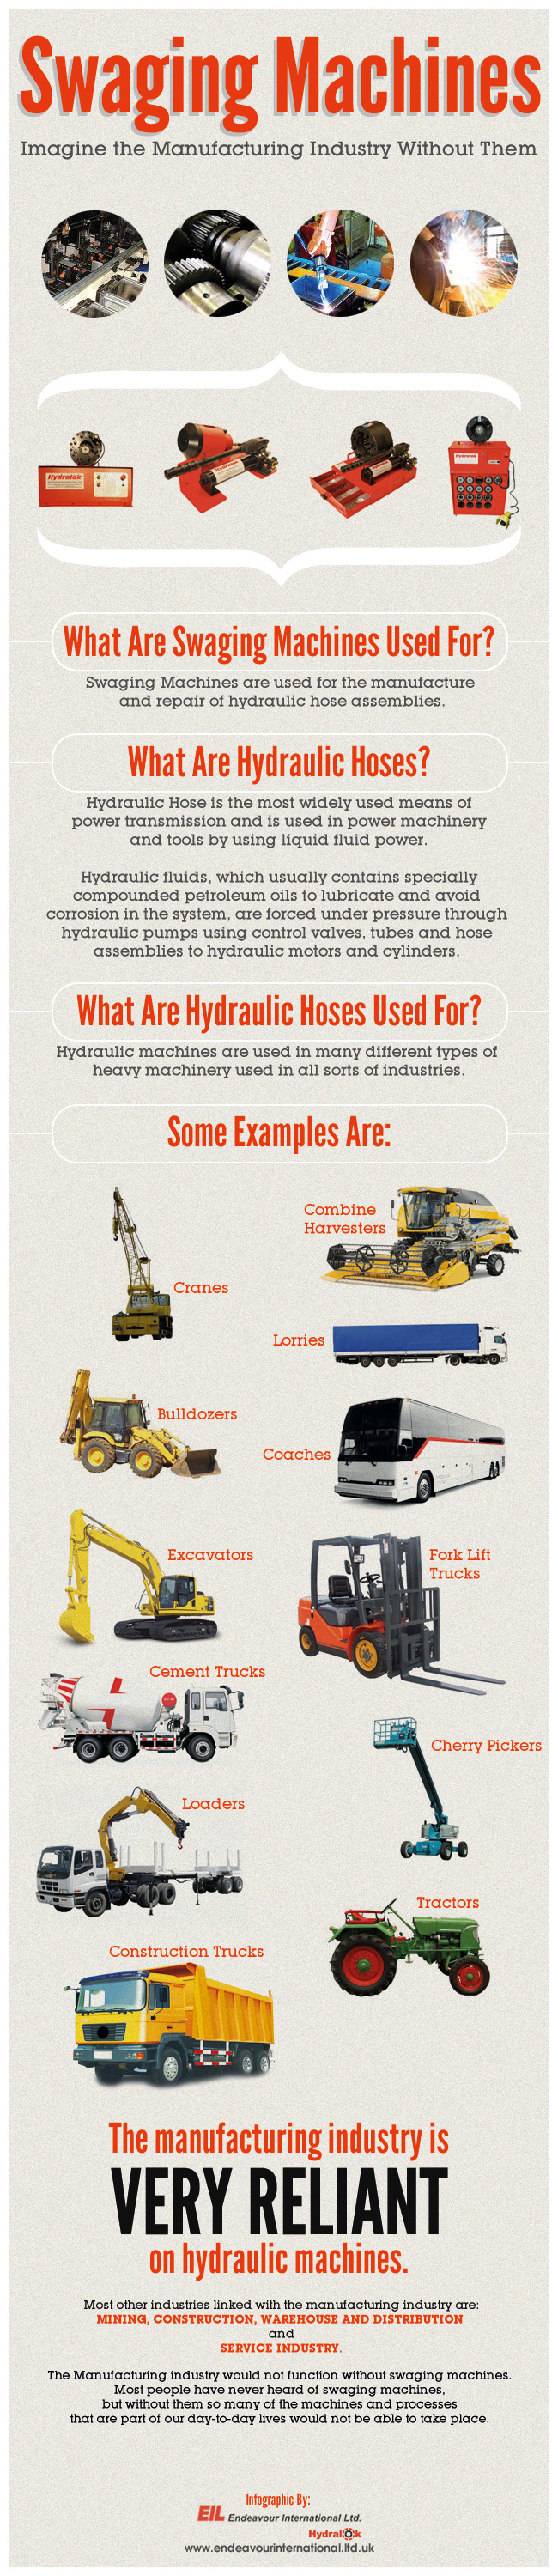 SWAGING_MACHINES_INFOGRAPHIC_V4.0_24022012.jpg